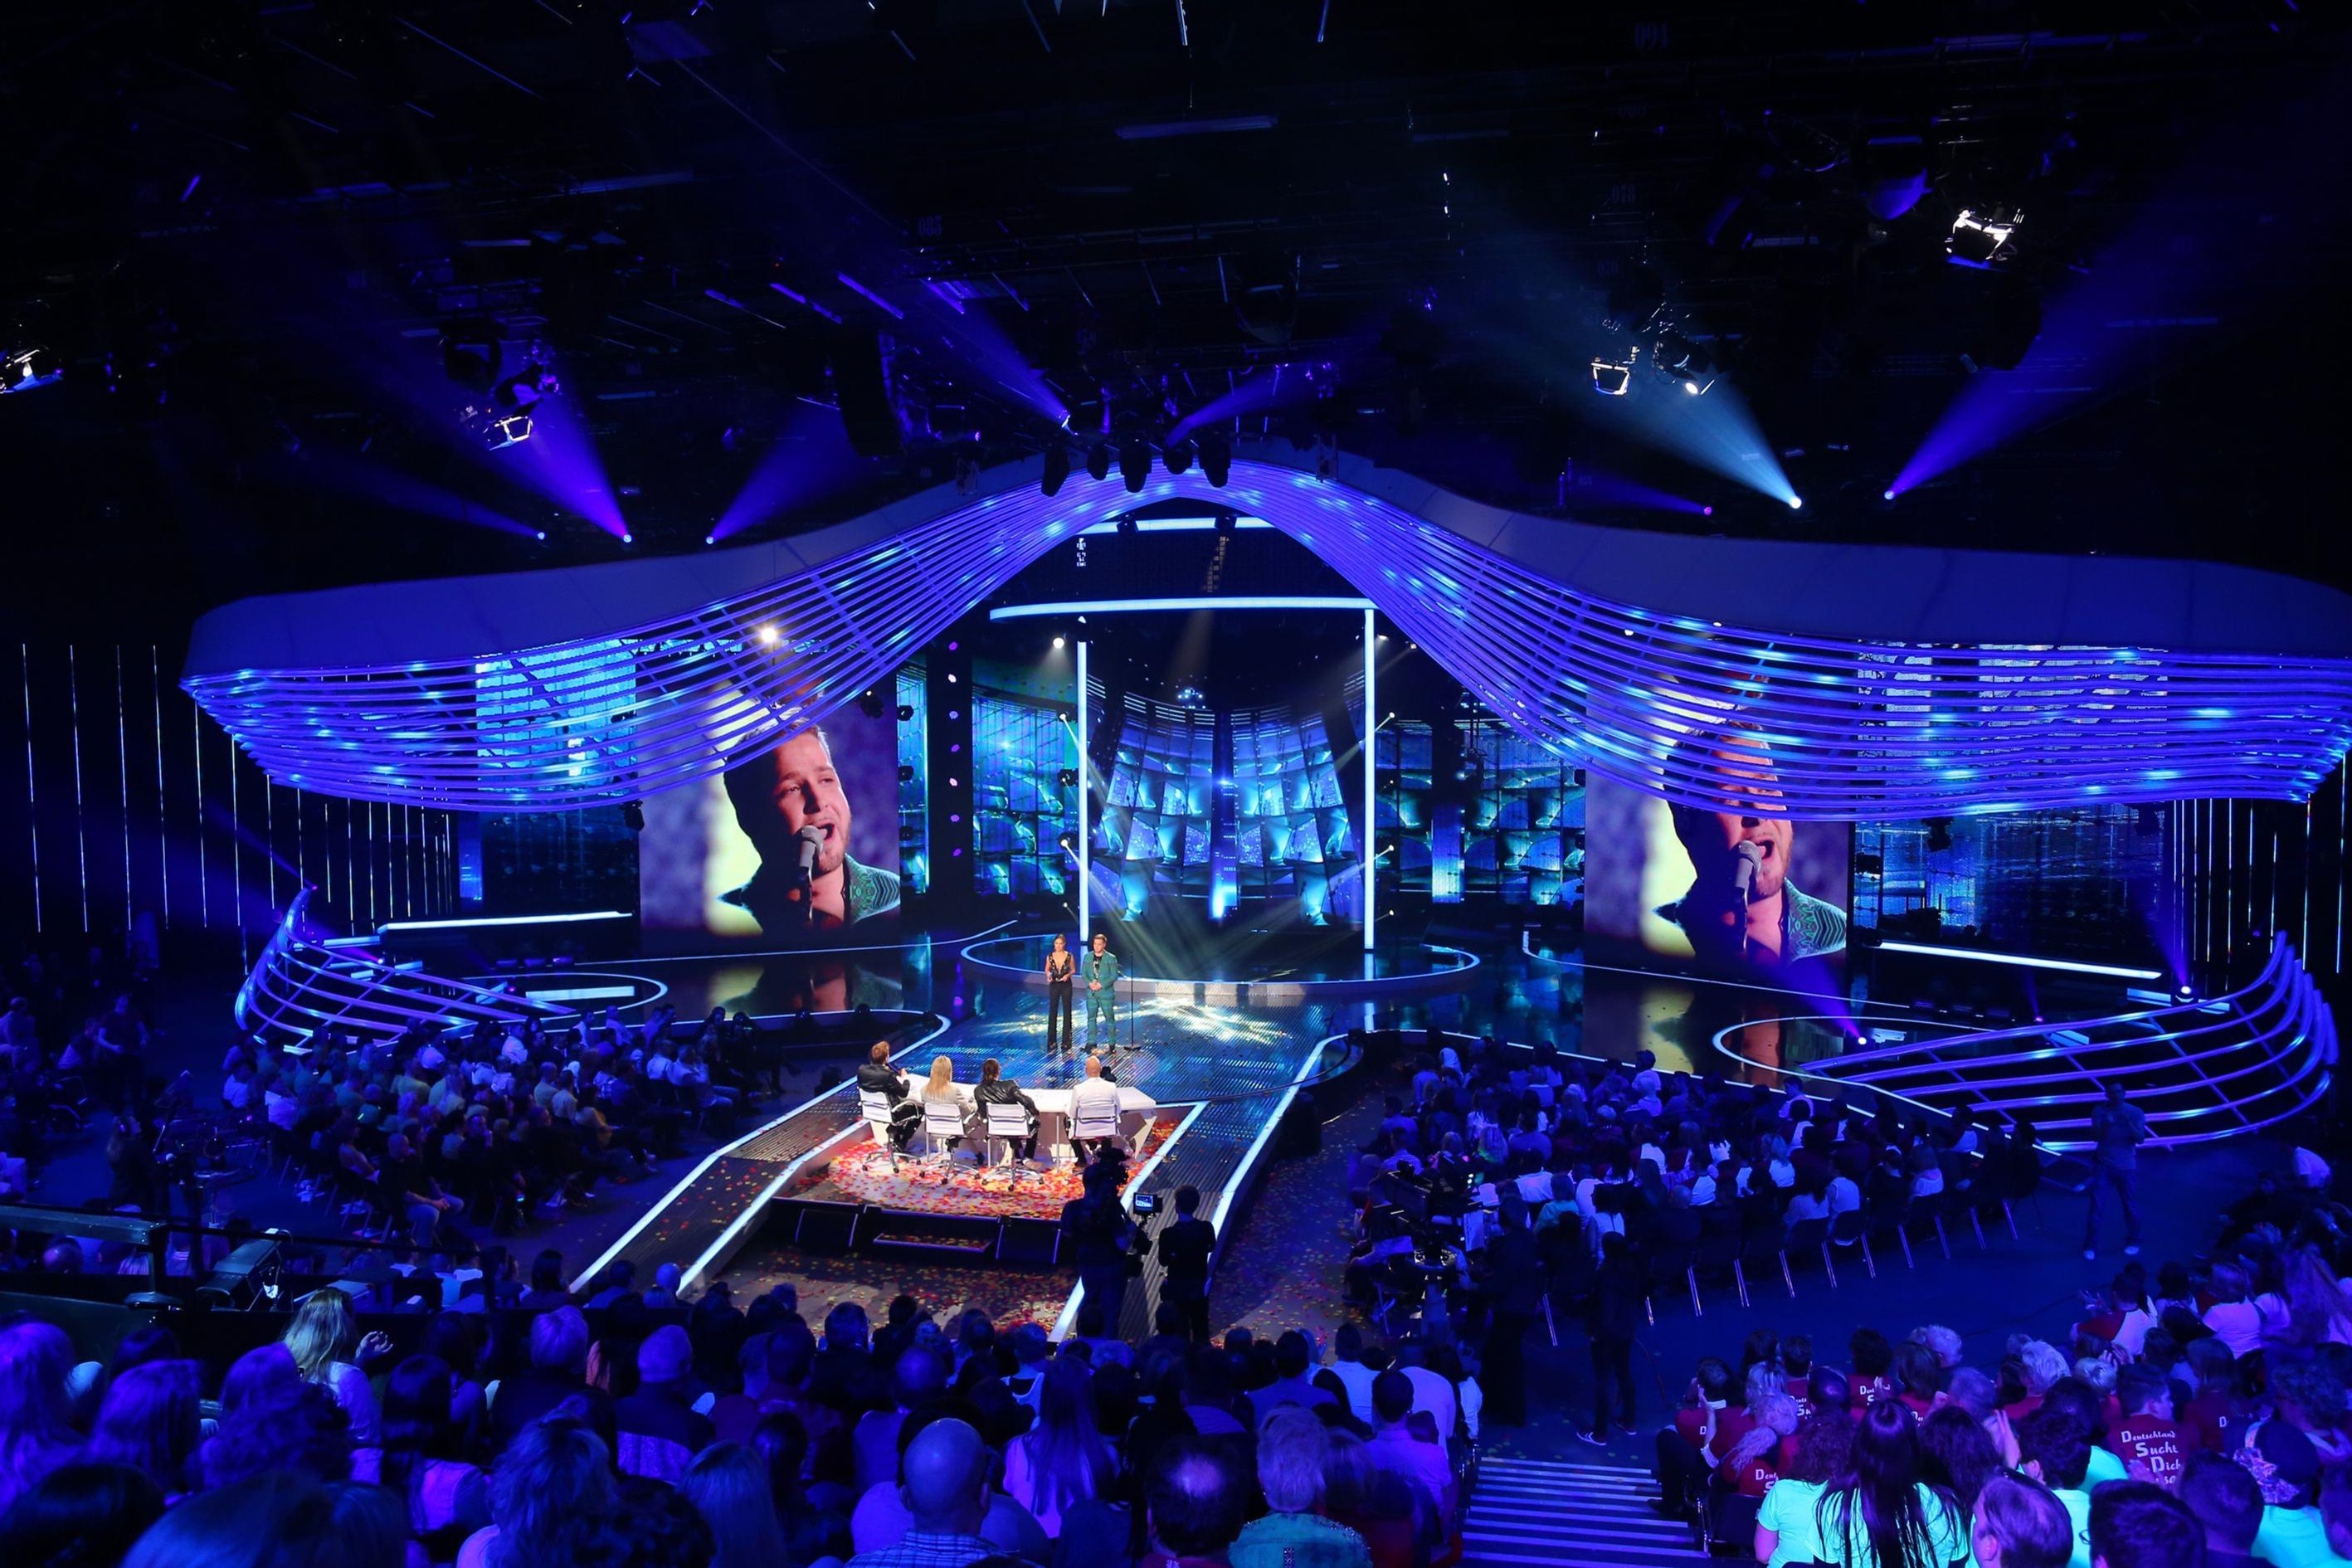 dsds live shows 2019 tickets